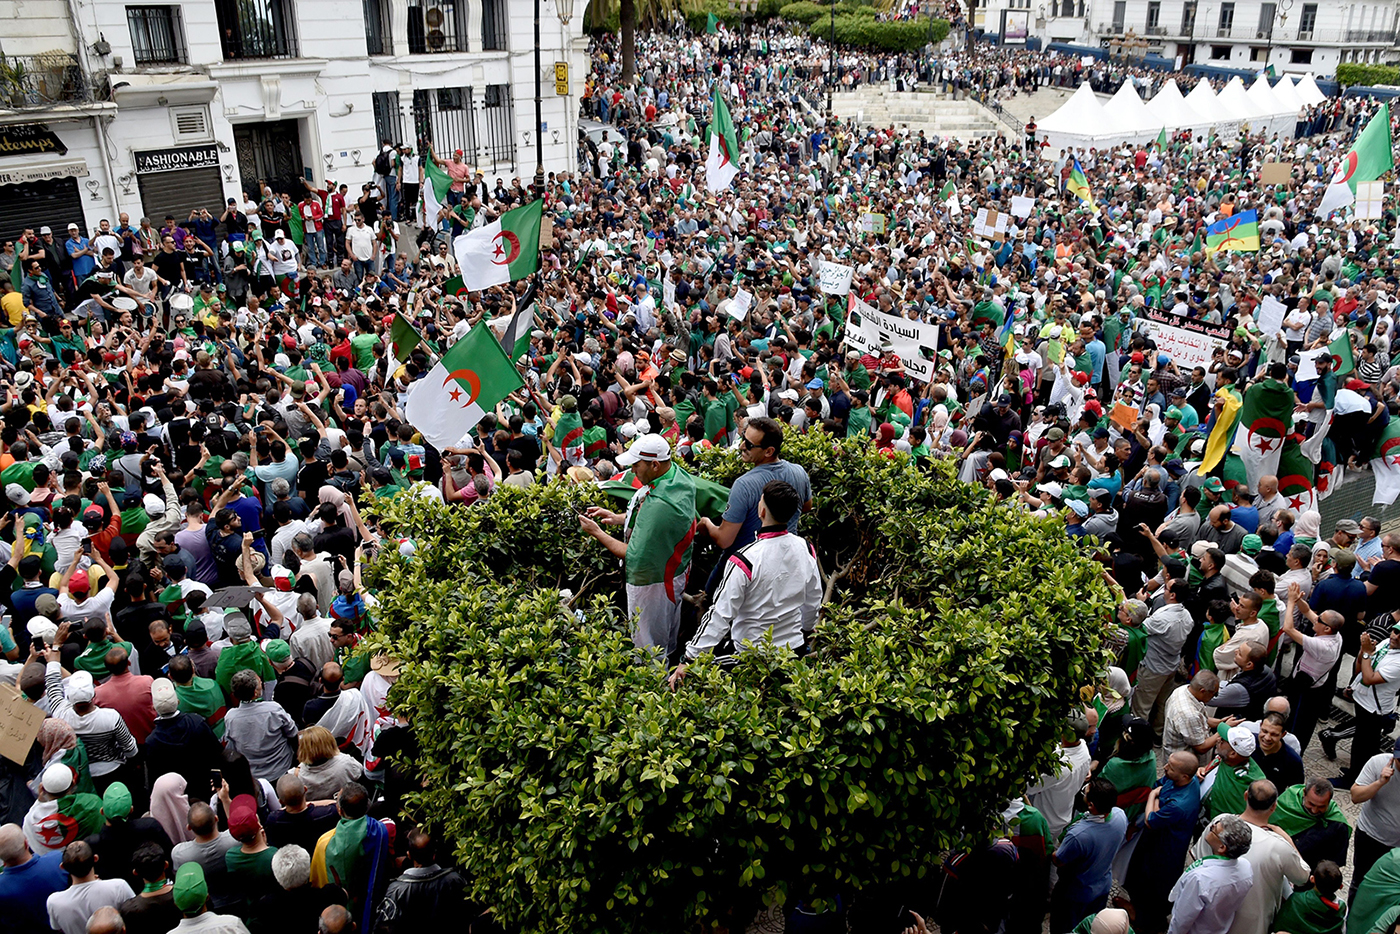 Algerian protesters shout slogans during an anti-government demonstration in the capital Algiers on May 24. RYAD KRAMDI/AFP/Getty Images